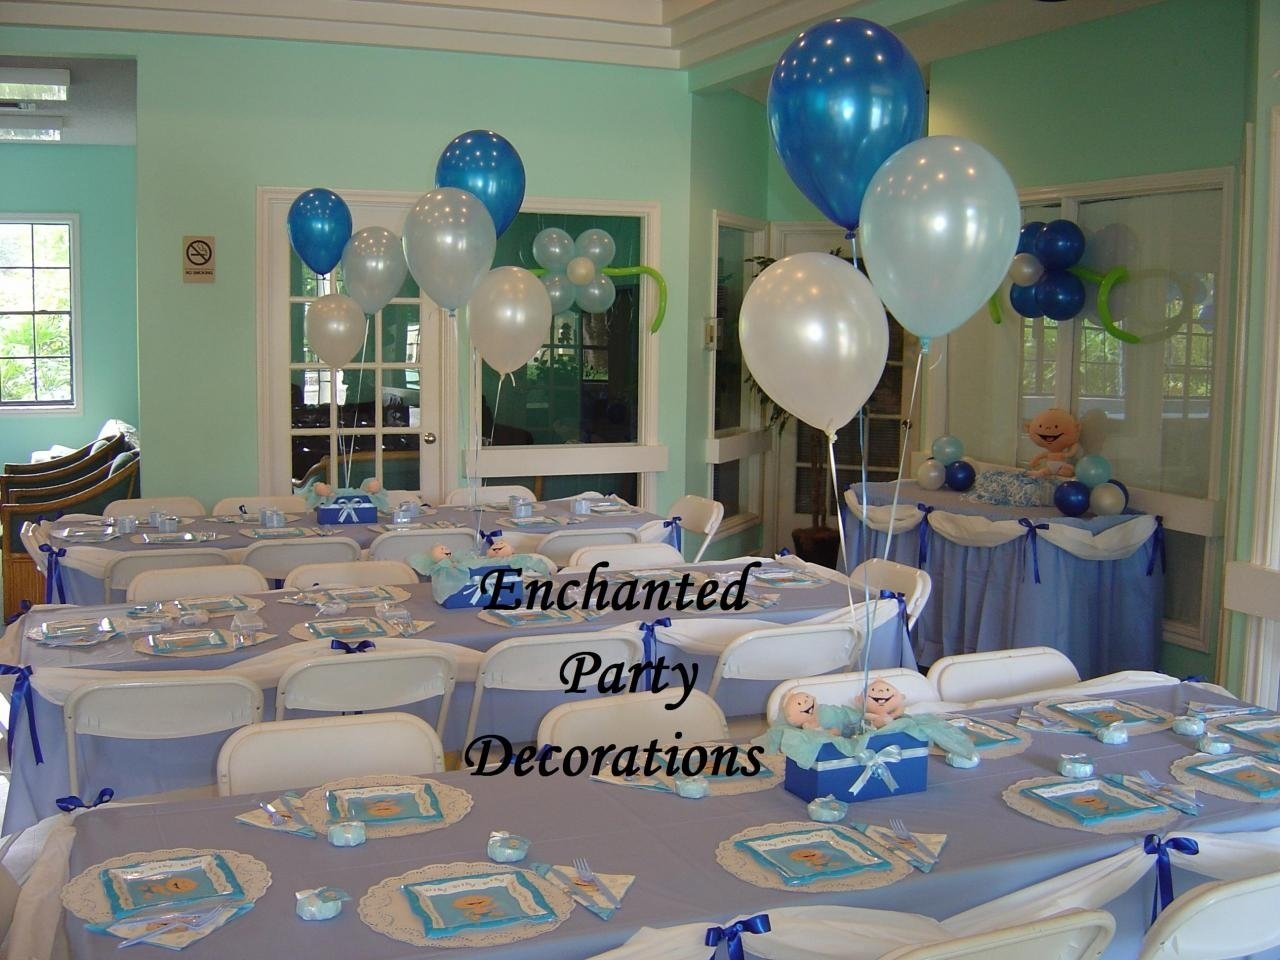 10 Unique Baby Shower Decoration Ideas Pictures baby shower table decorations ideas omega center ideas for baby 6